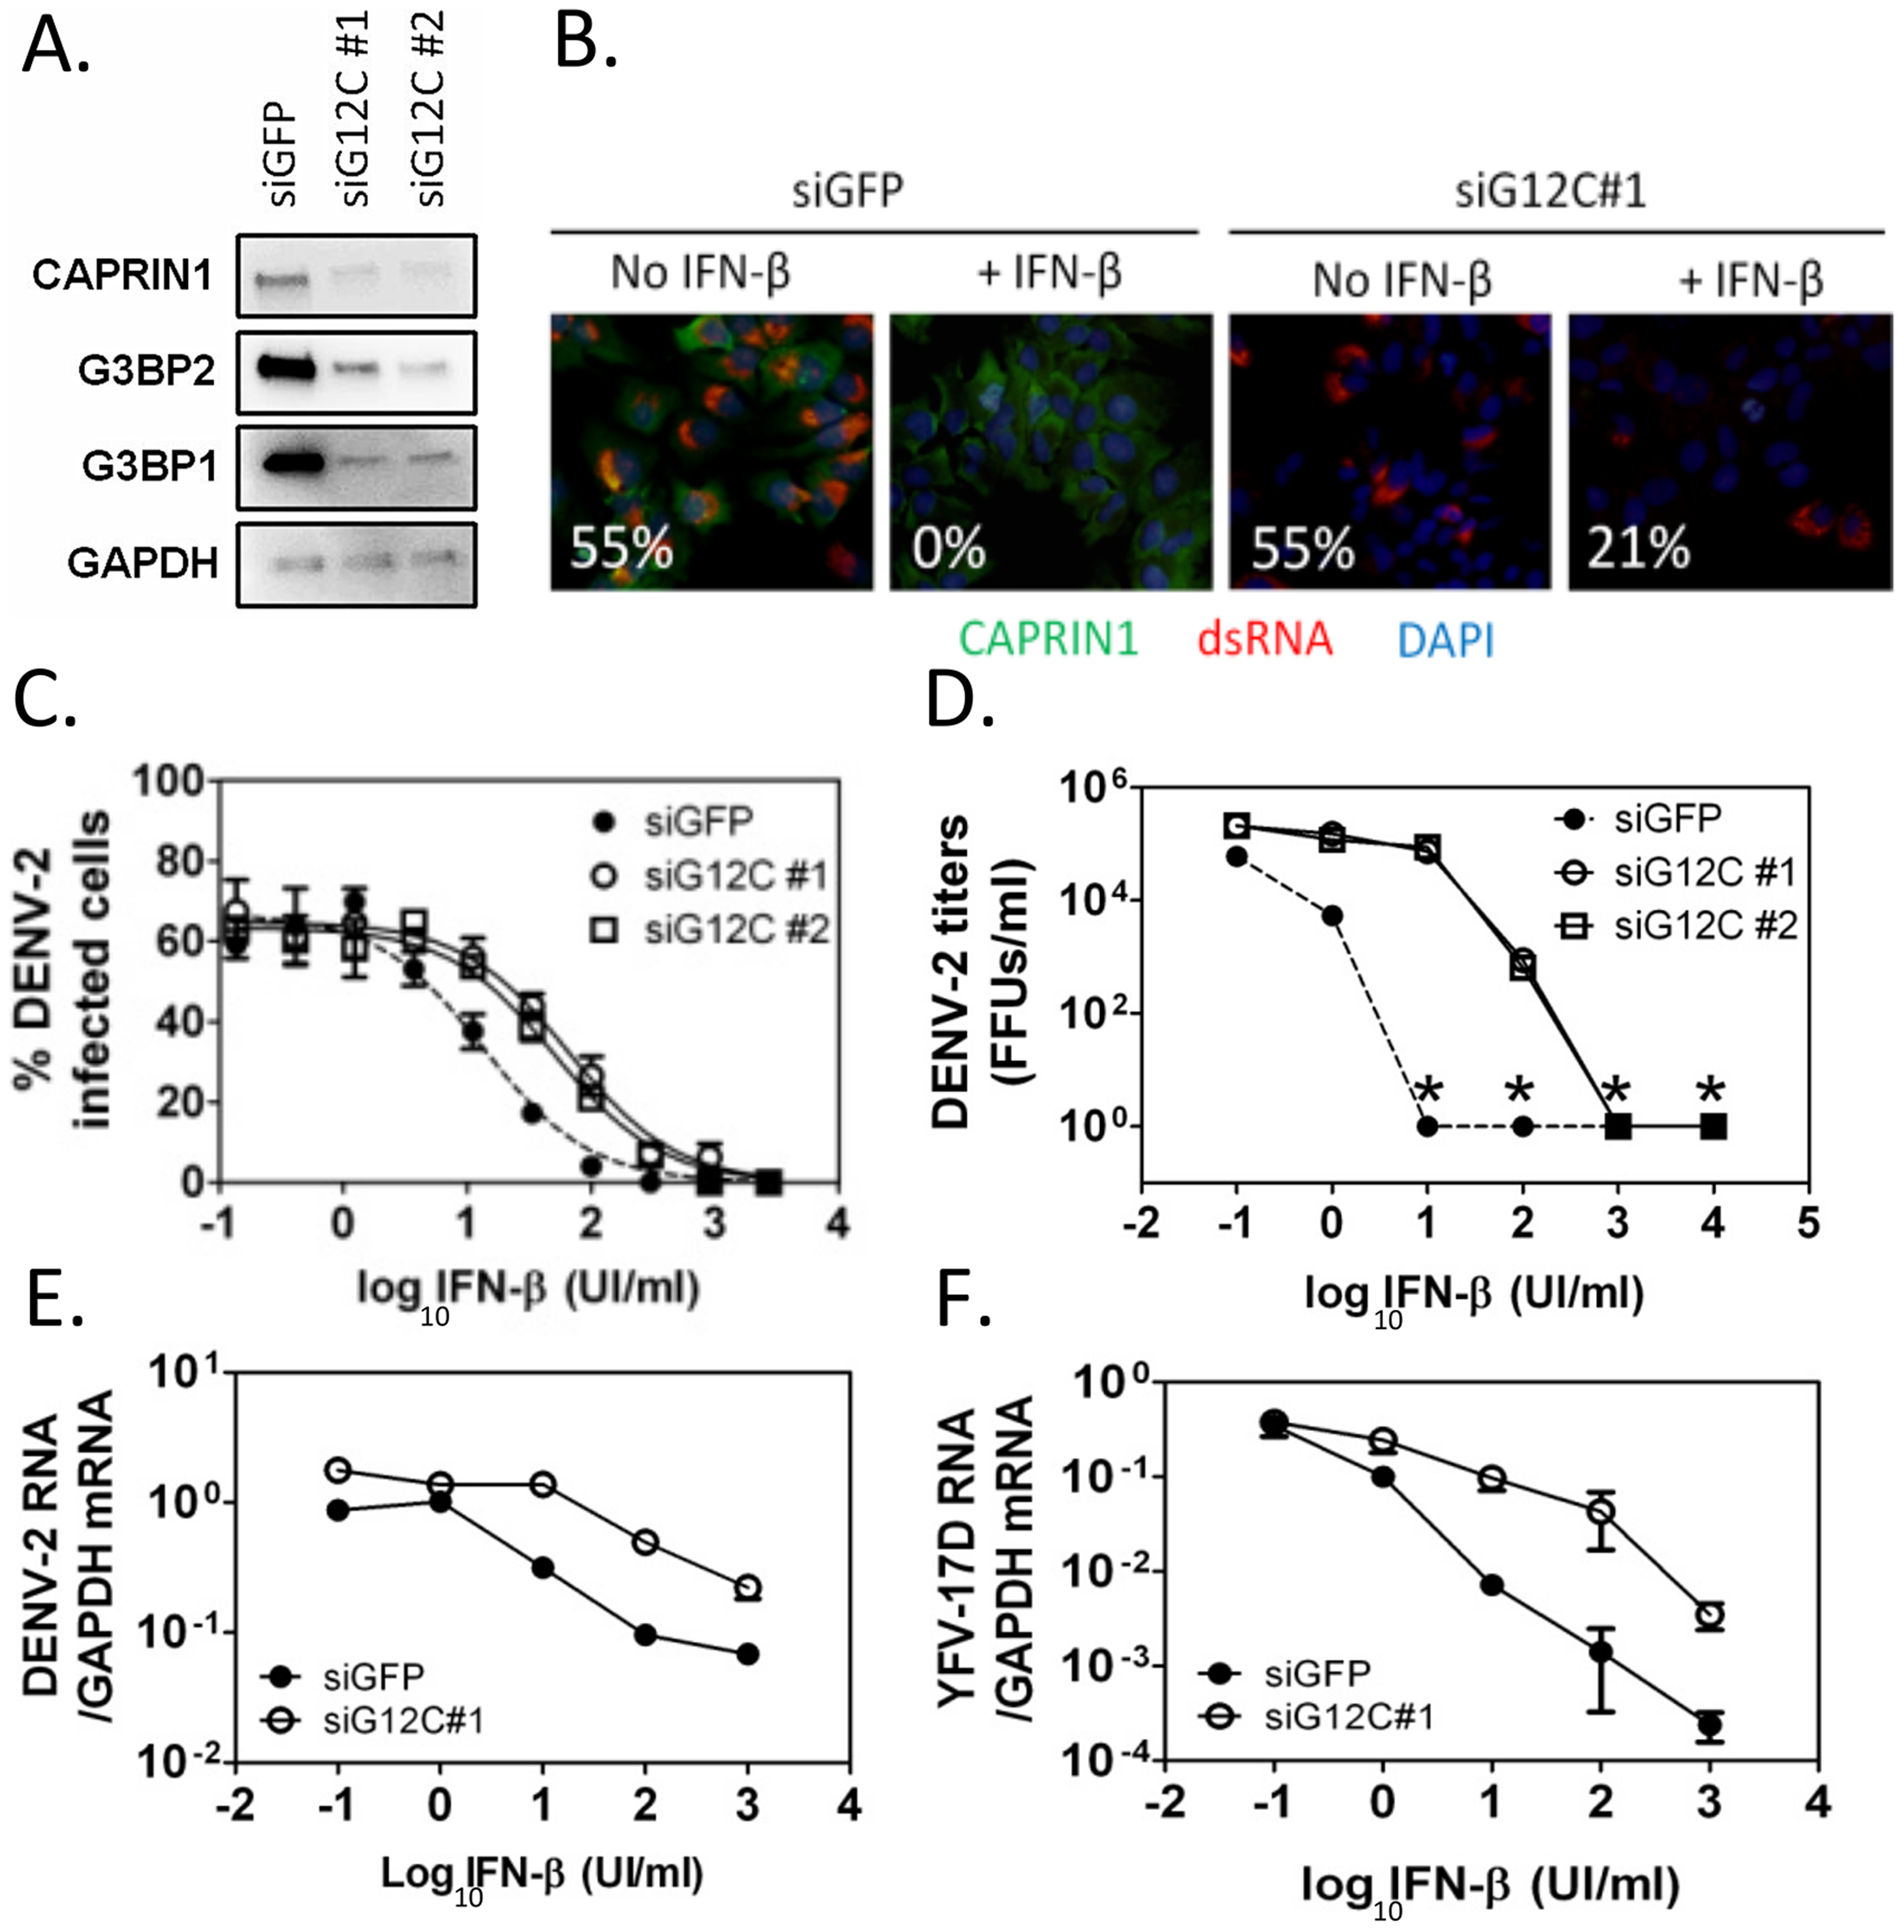 G3BP1, G3BP2 and CAPRIN1 are required for IFN-β mediated antiviral activity against DENV-2.